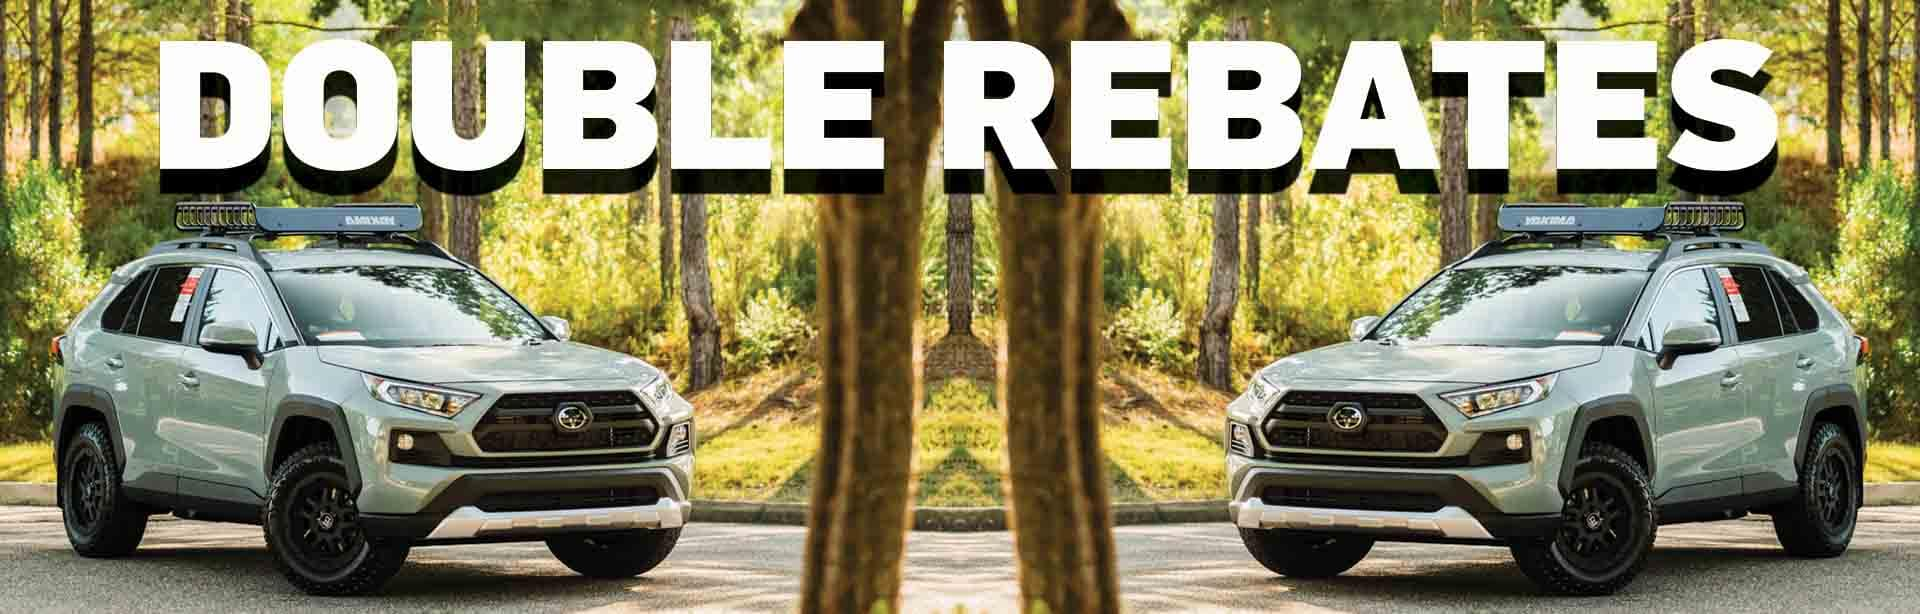 Double Rebates at Hoover Toyota